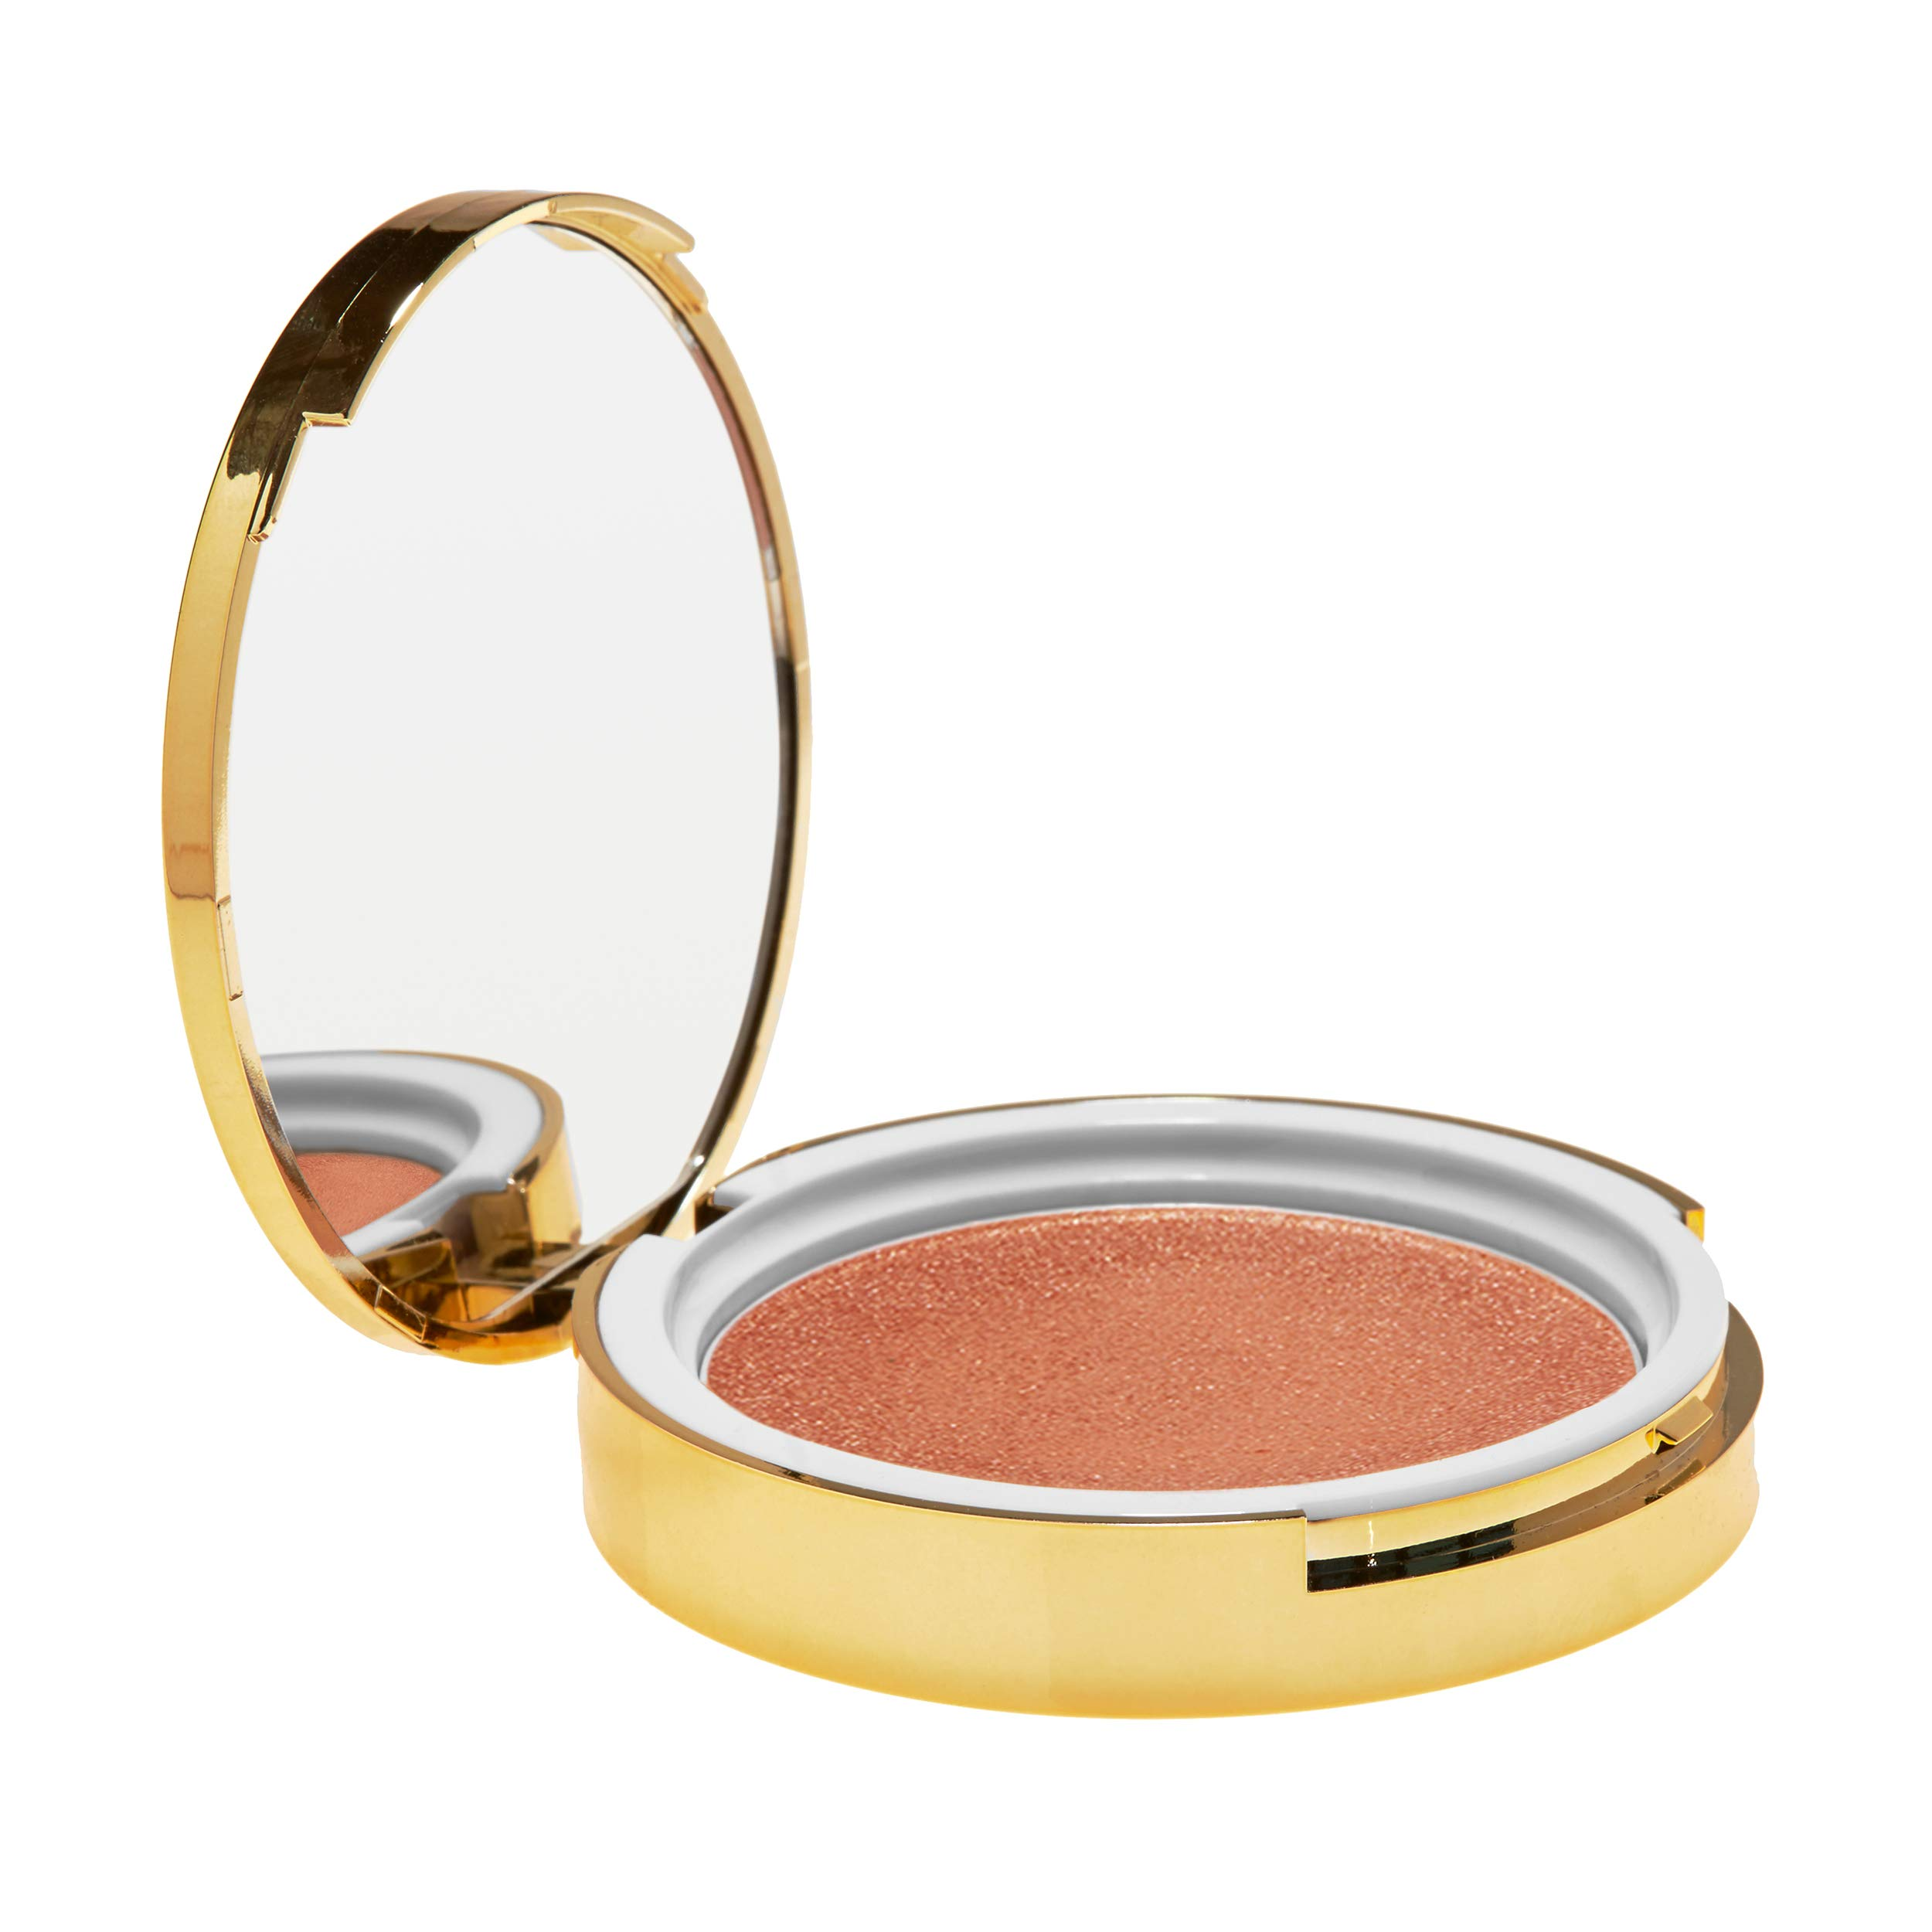 Winky Lux Powder Lights Highlighter, Adds Translucent Shimmer to Cheeks and Skin, Jewel